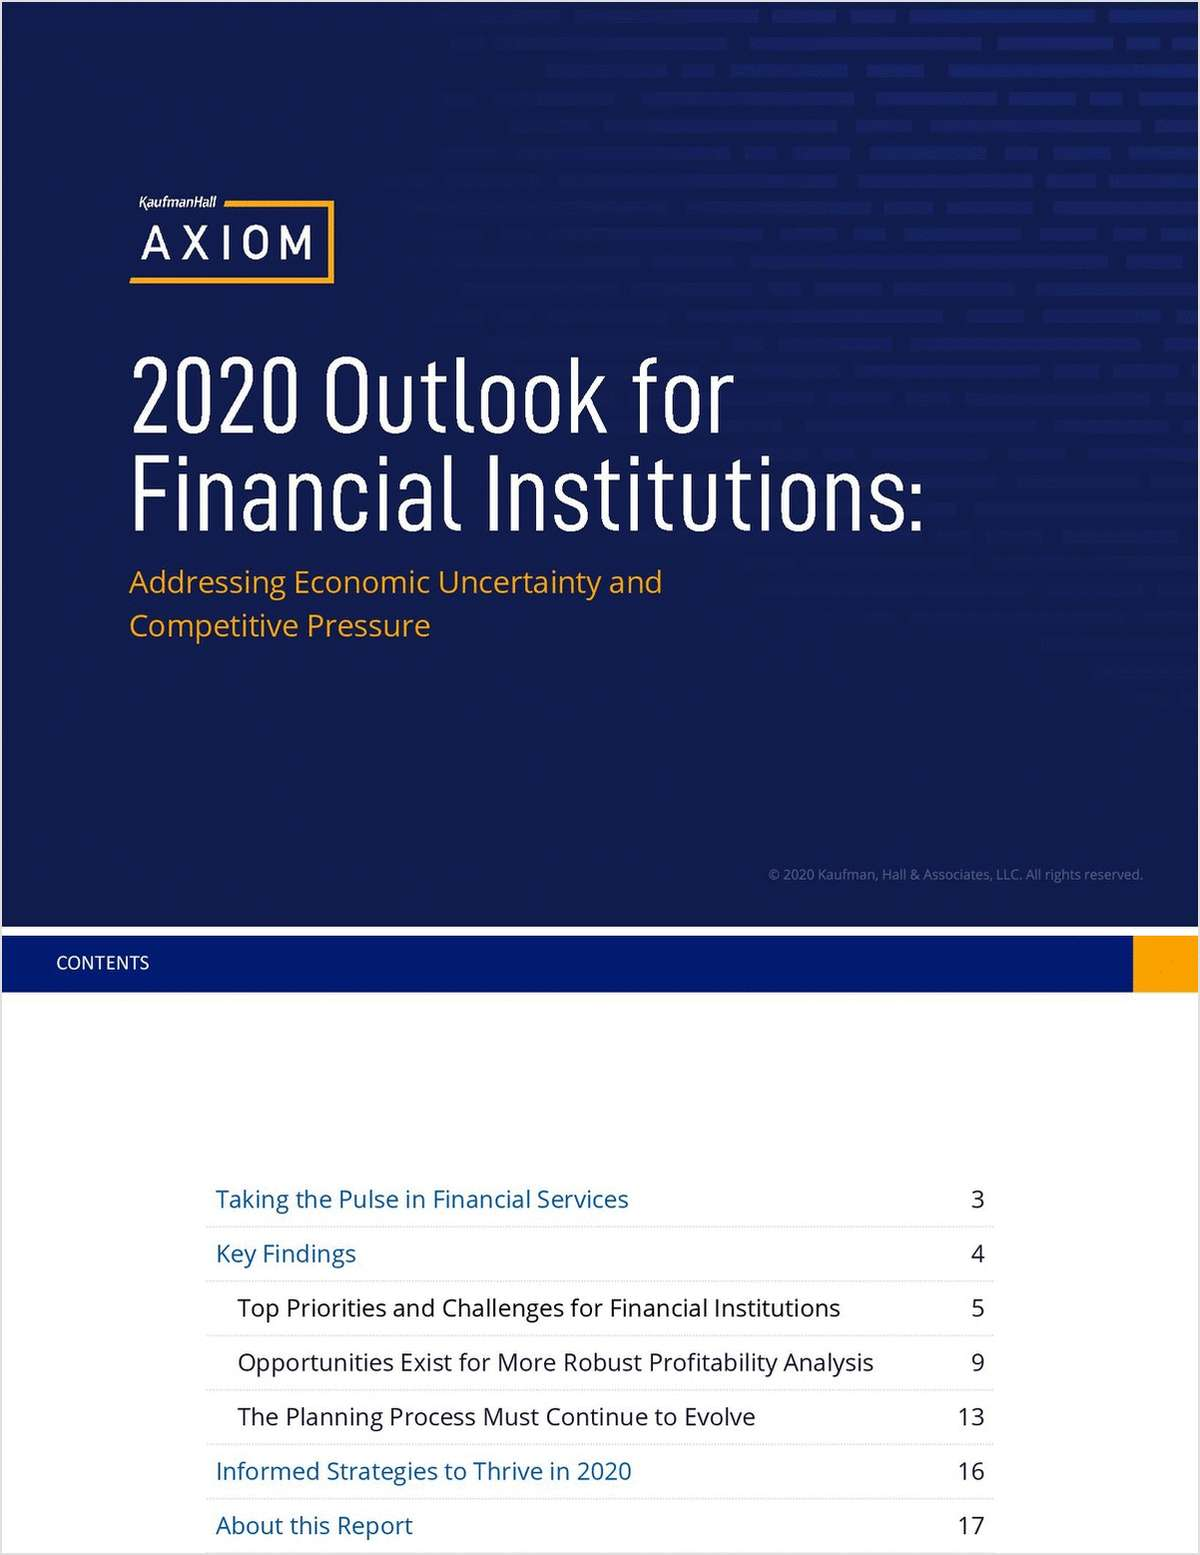 2020 Outlook for Financial Institutions: Addressing Economic Uncertainty and Competitive Pressure